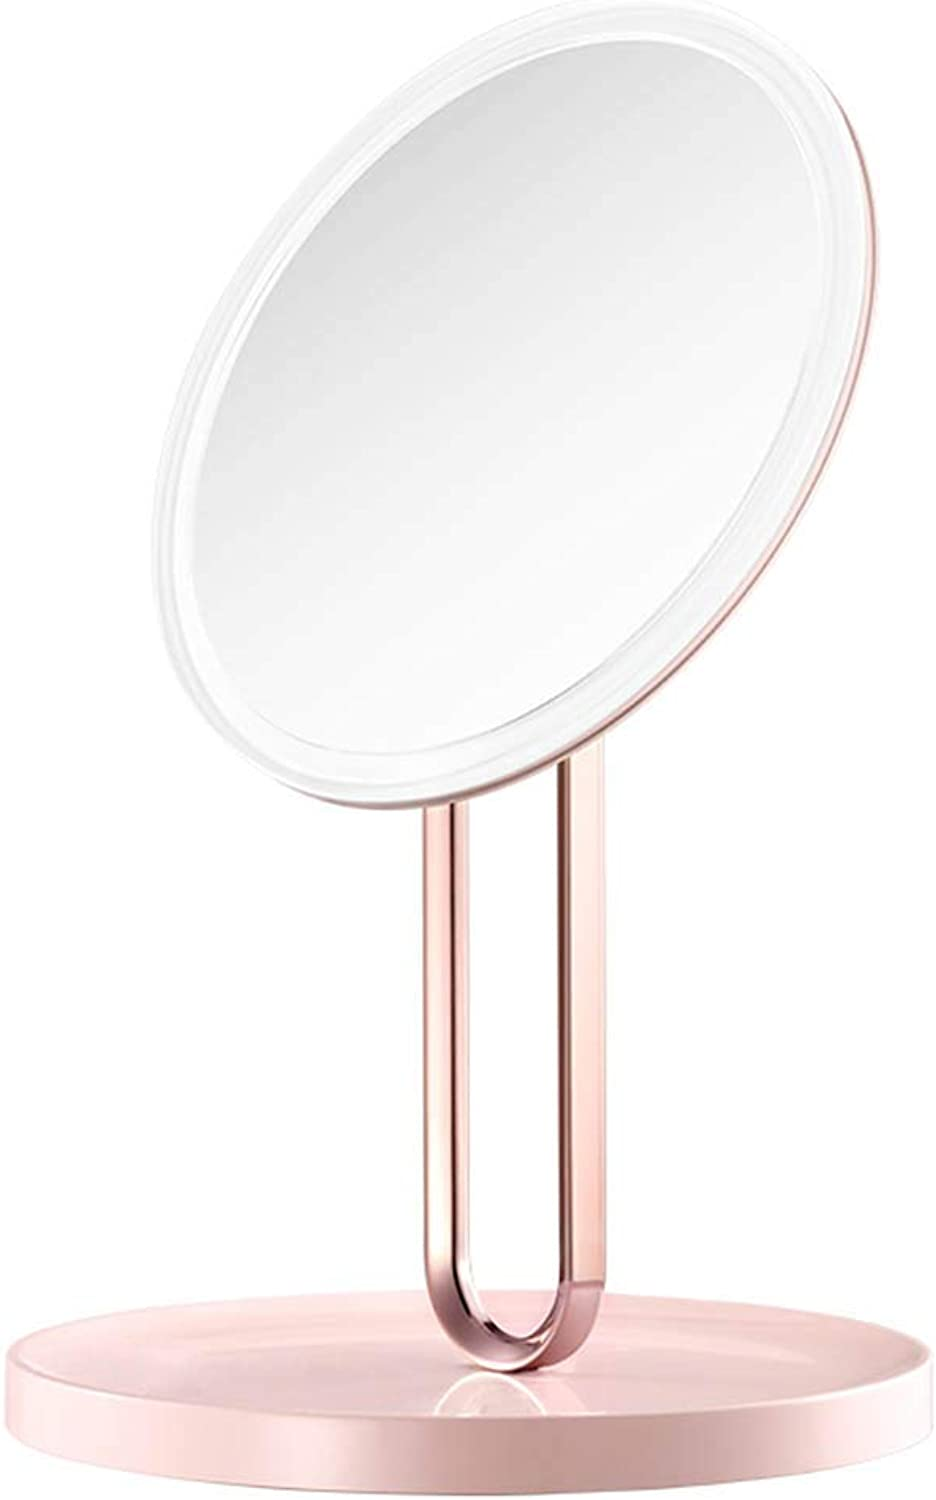 DH JINGZI - Makeup Mirror Makeup Mirror Round Double-Sided redating Dimming Soft Light Led Fill Light USB Interface Dressing Table ABS Plastic, 3 colors (color   Pink, Size   20.5x32.6cm)